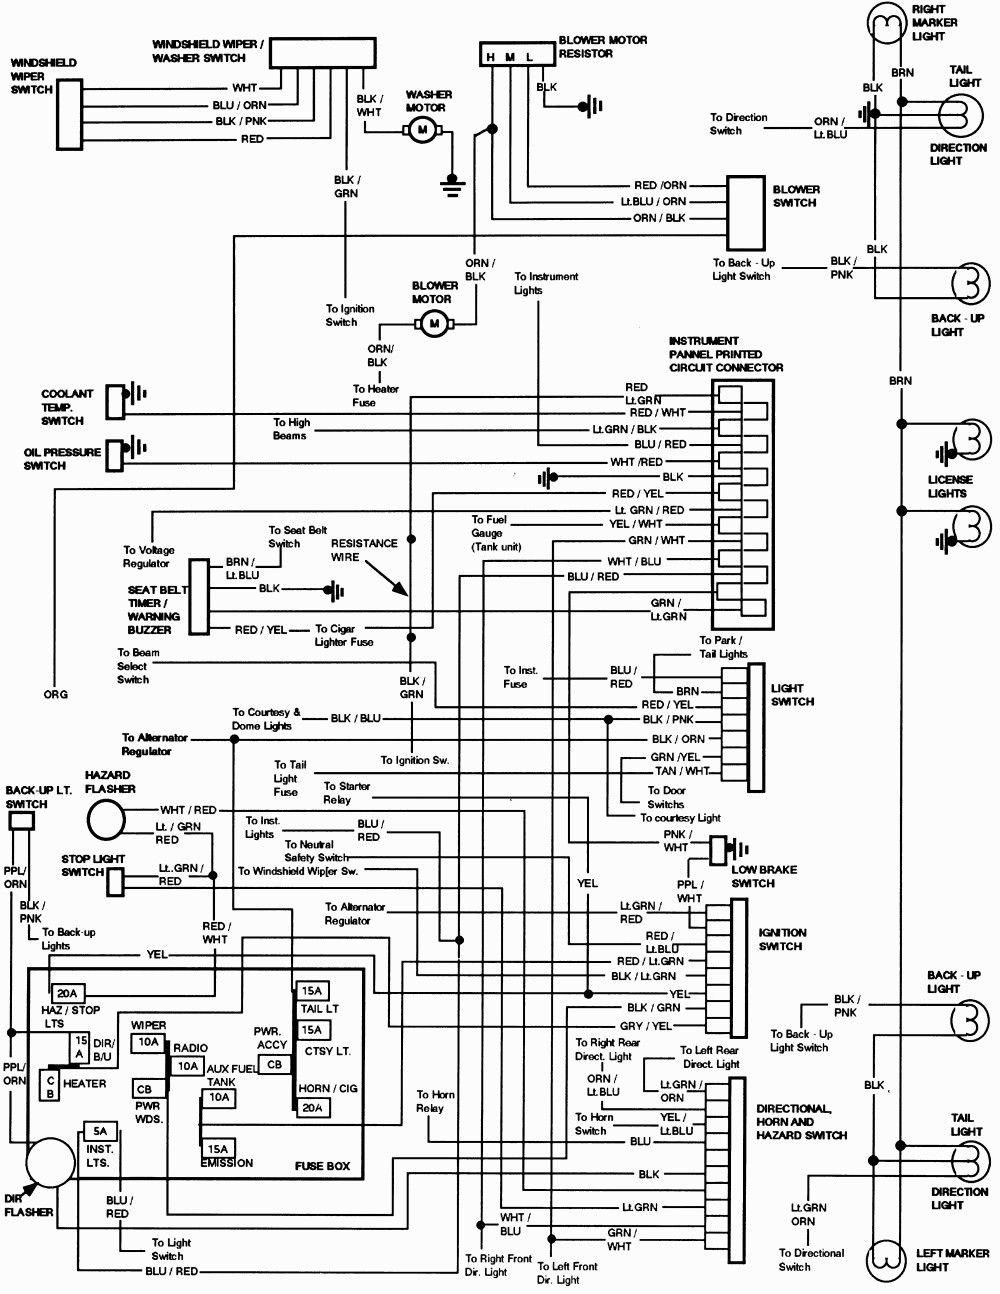 1985 mazda pickup vacuum diagram wiring schematic